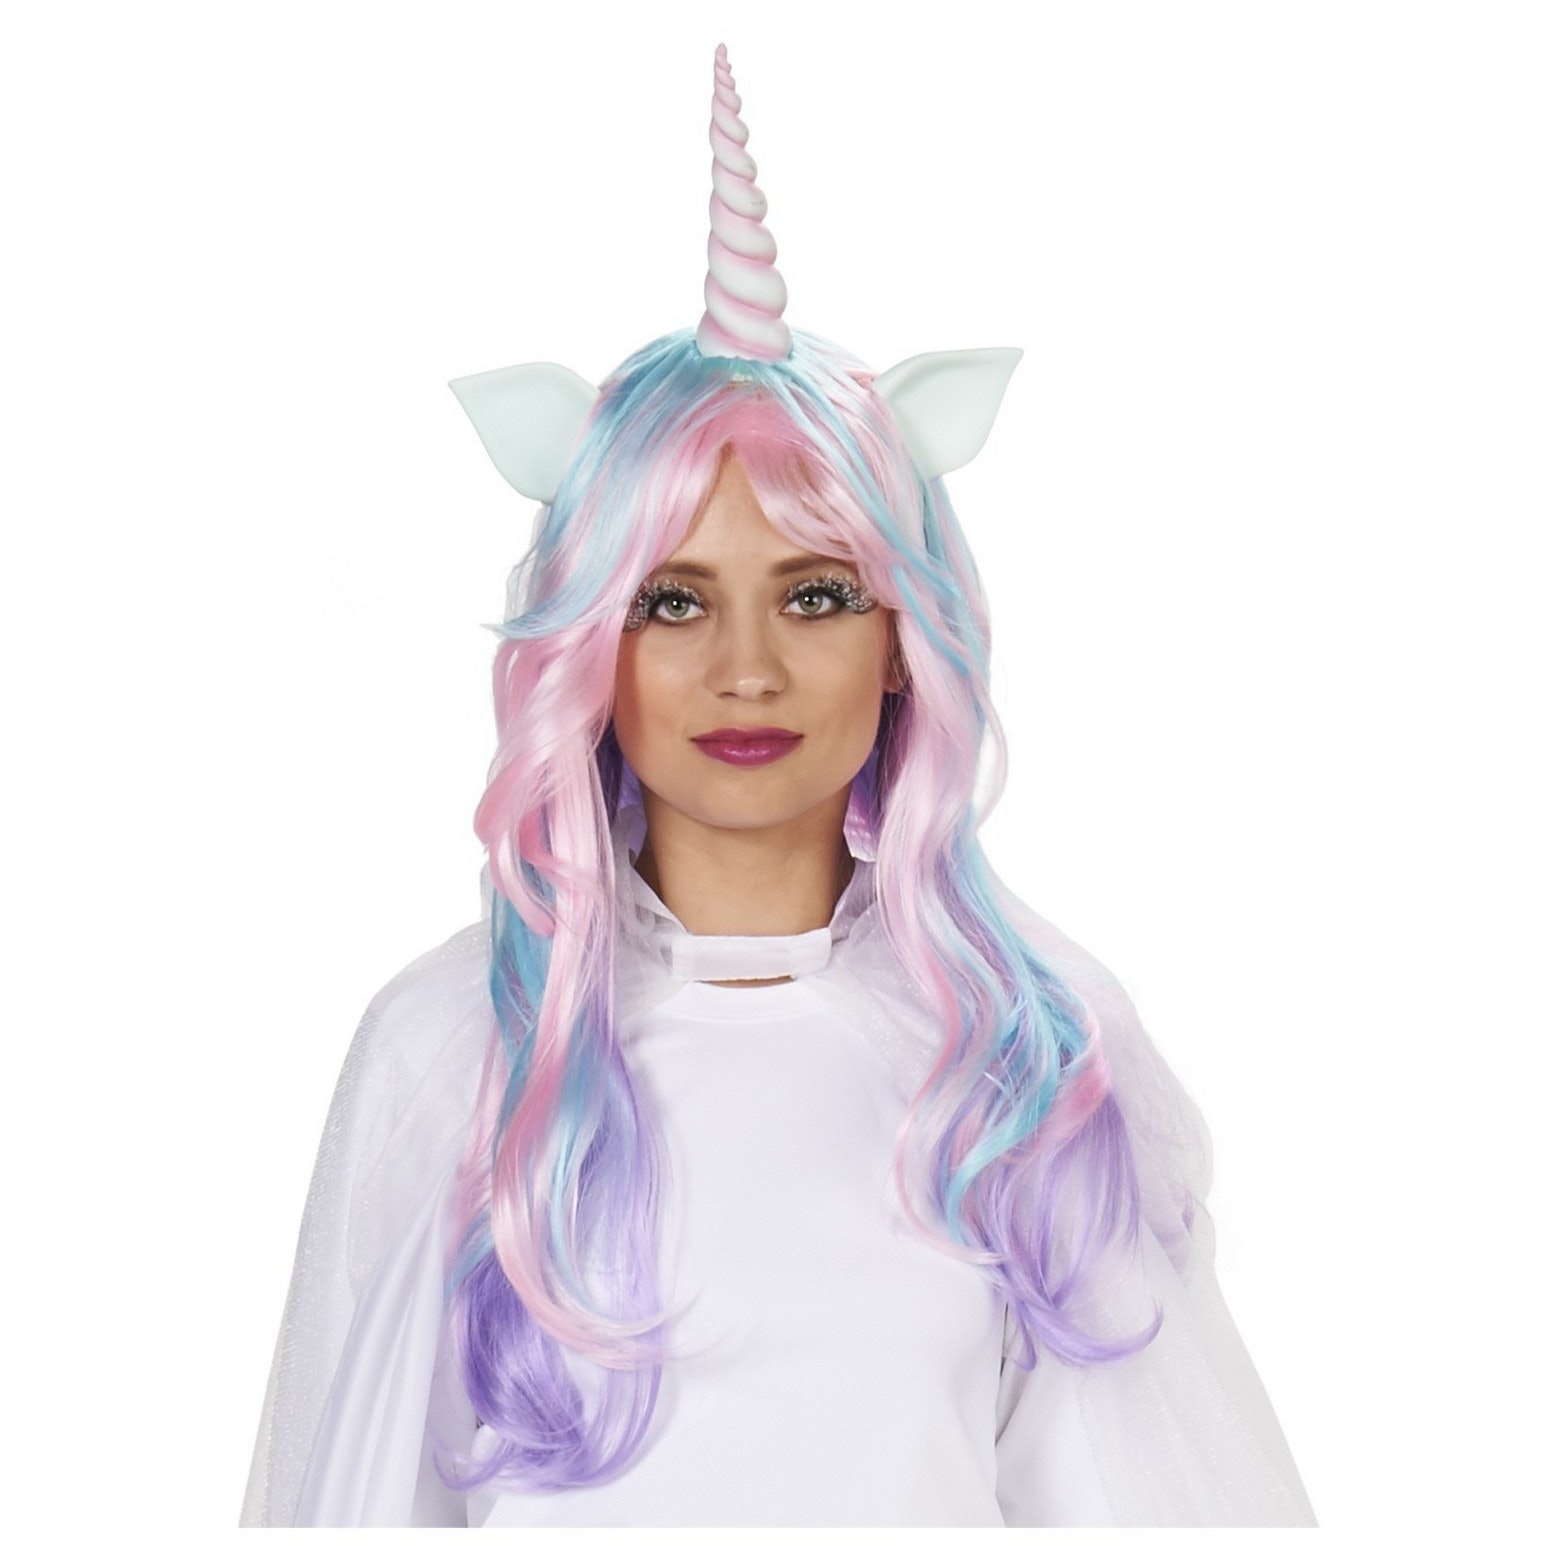 DIY Starbucks Unicorn Frappuccino Halloween Costume Ideas That Are Sweet AF